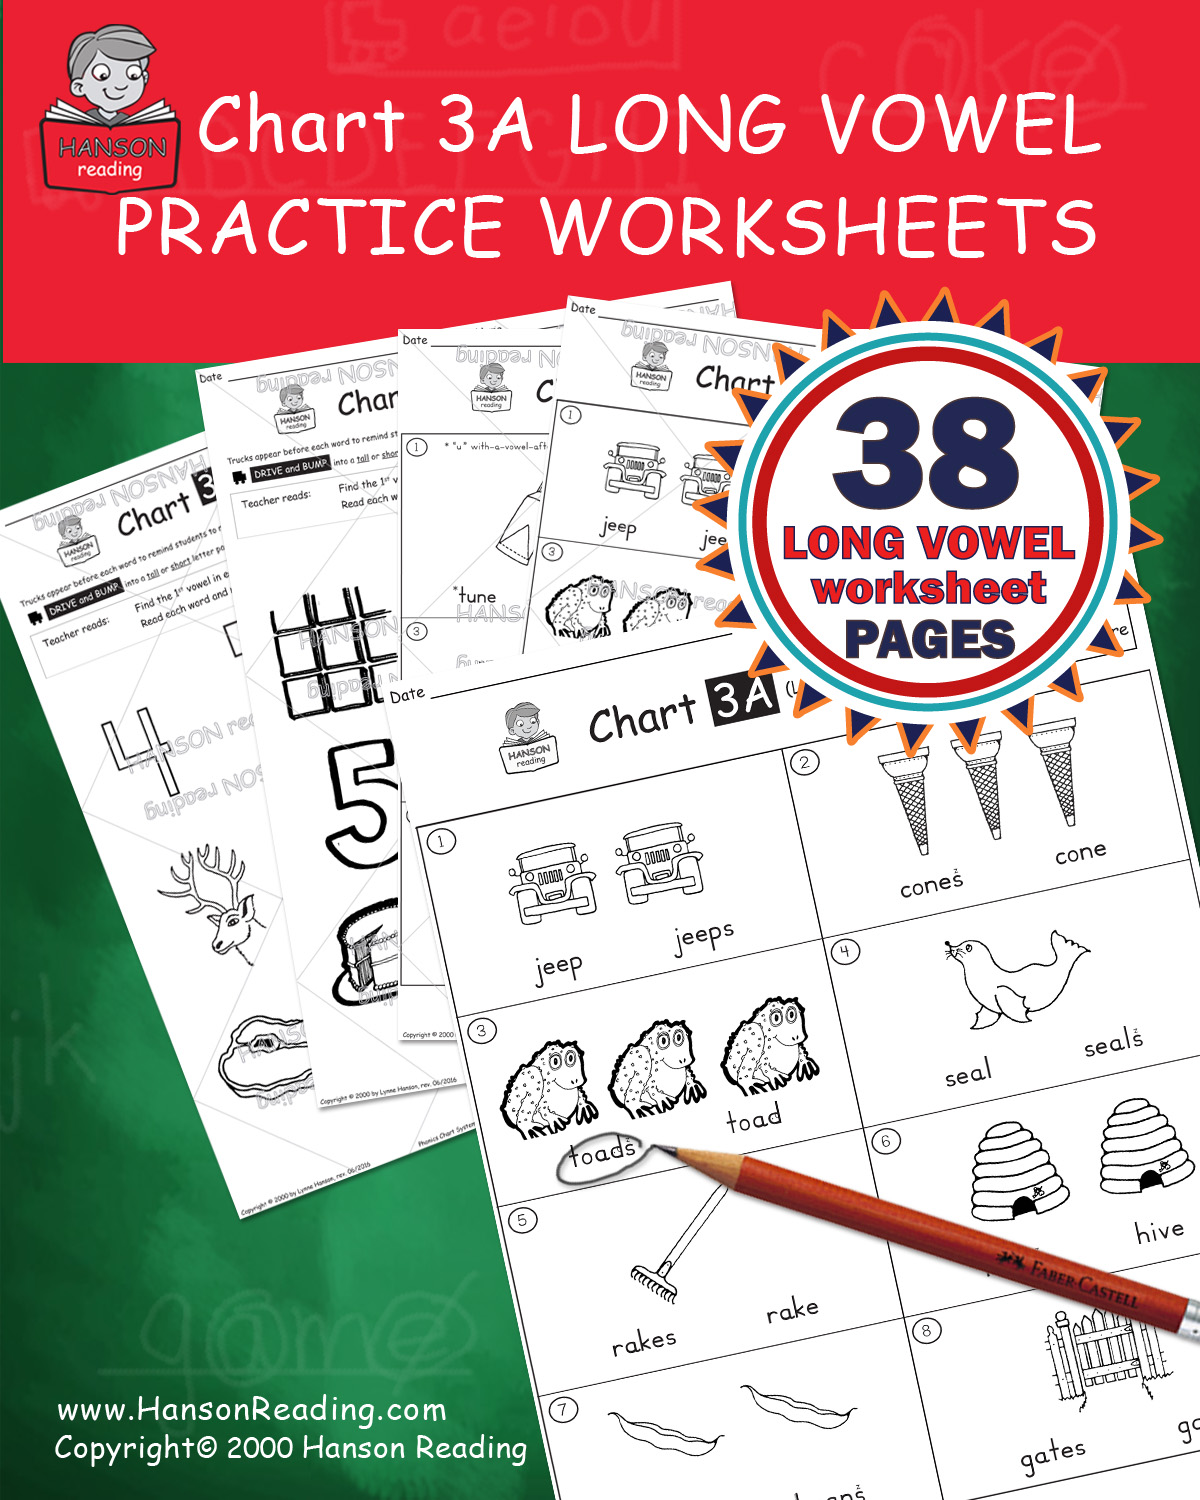 Chart 3a Practice Worksheets Word Comprehension 38 Page Pack